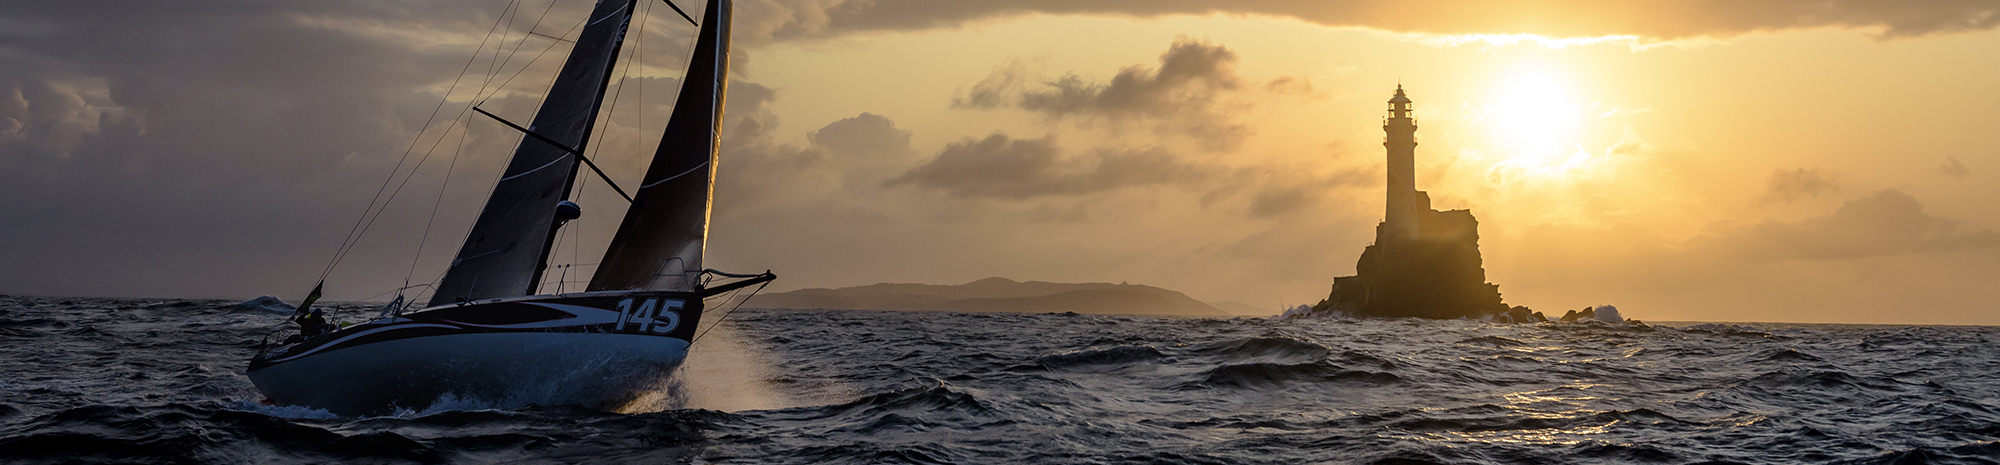 Yacht racing, sailing news, events and blogs | Yachting World